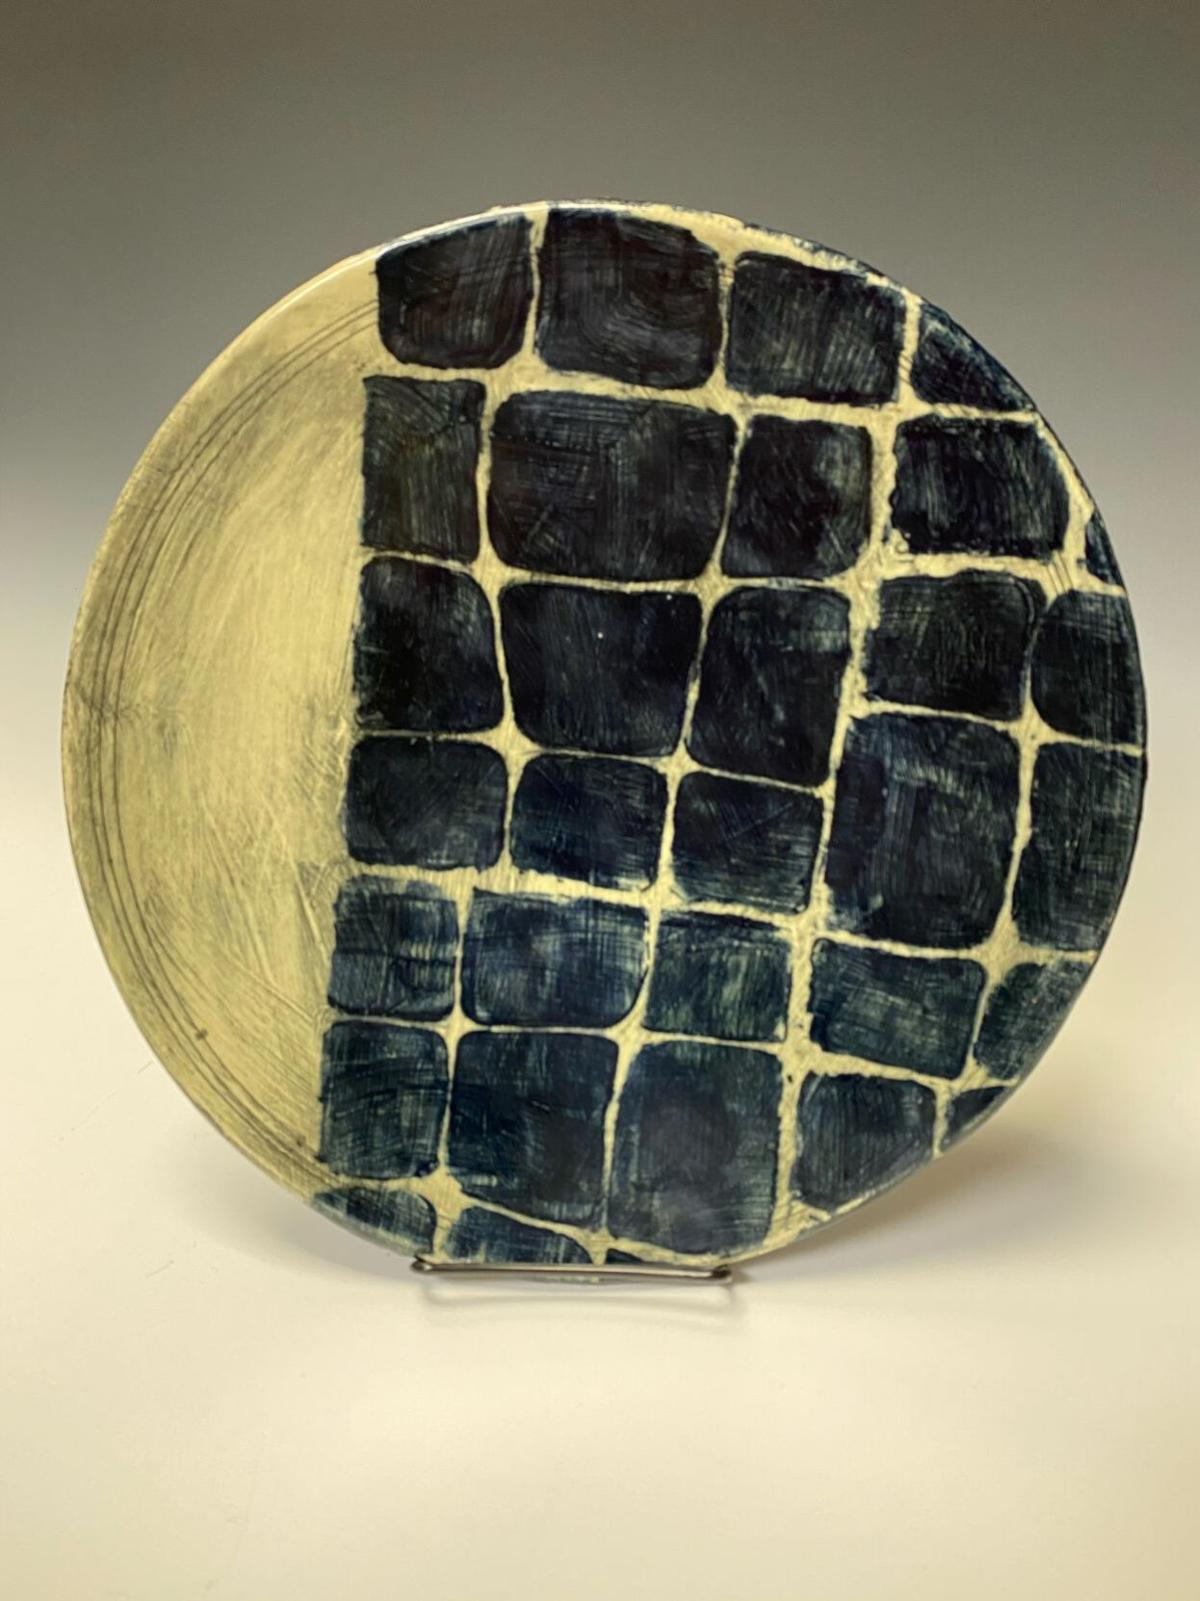 A clay plate by Laura Bachinski, inspired by her interest in indigo-dyed textiles.